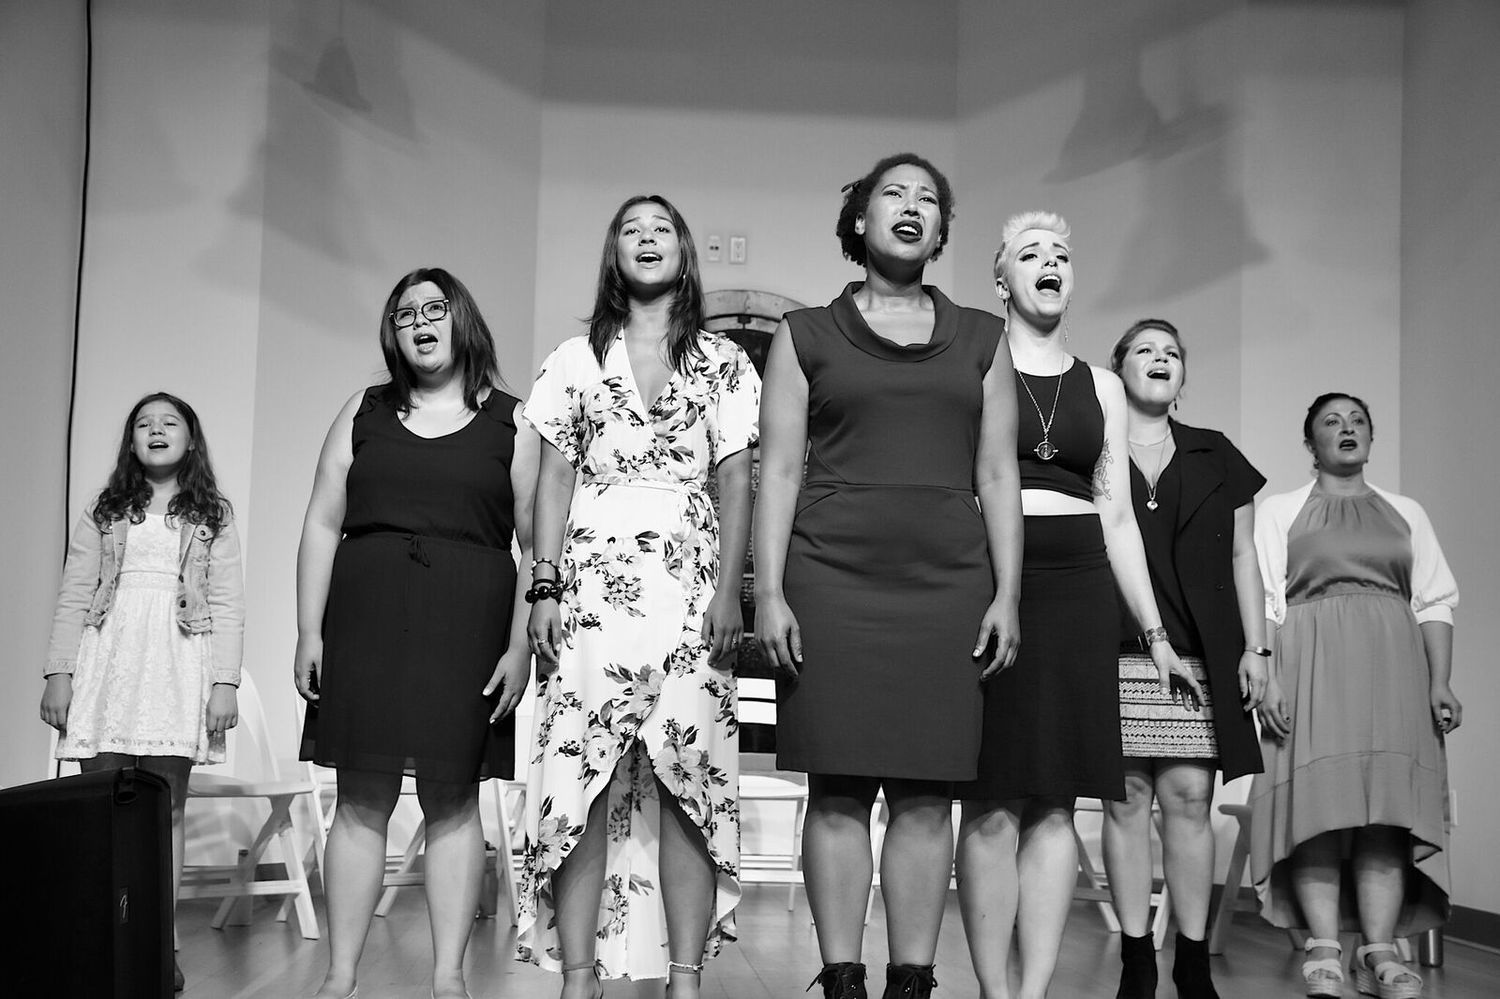 BWW REVIEW: Fabulist Theatre's OUR TIME: AN EMPOWERMENT CABARET Shines Bright